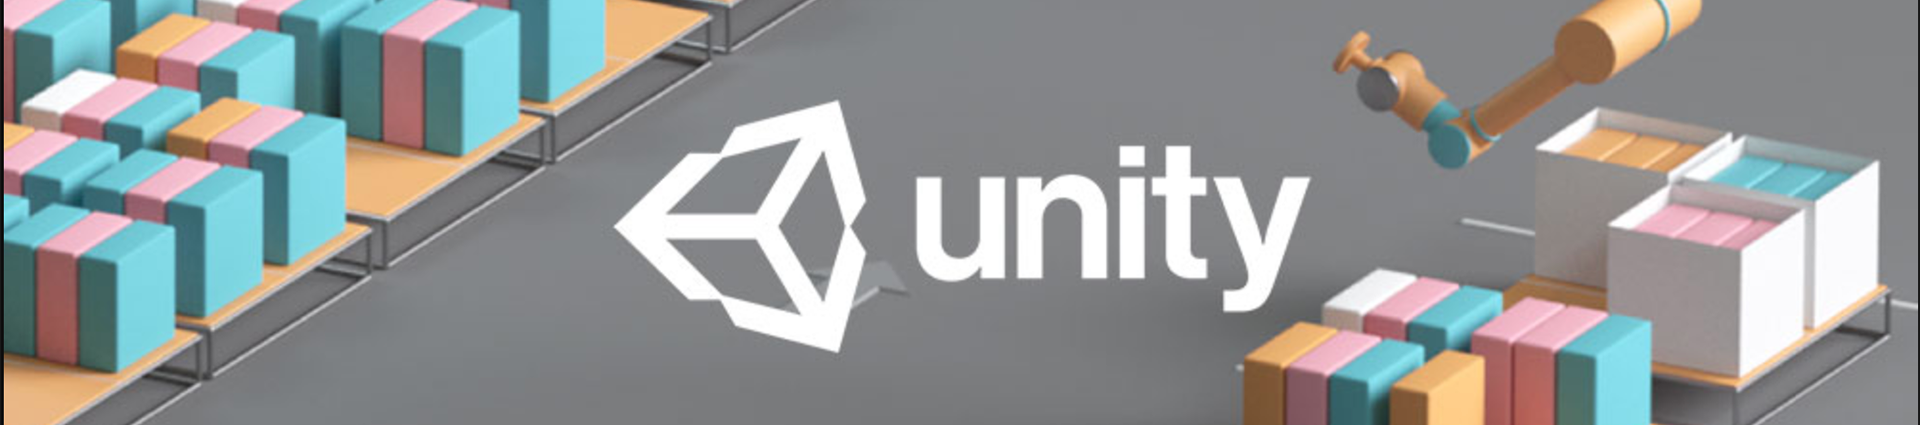 unity 3D game engine